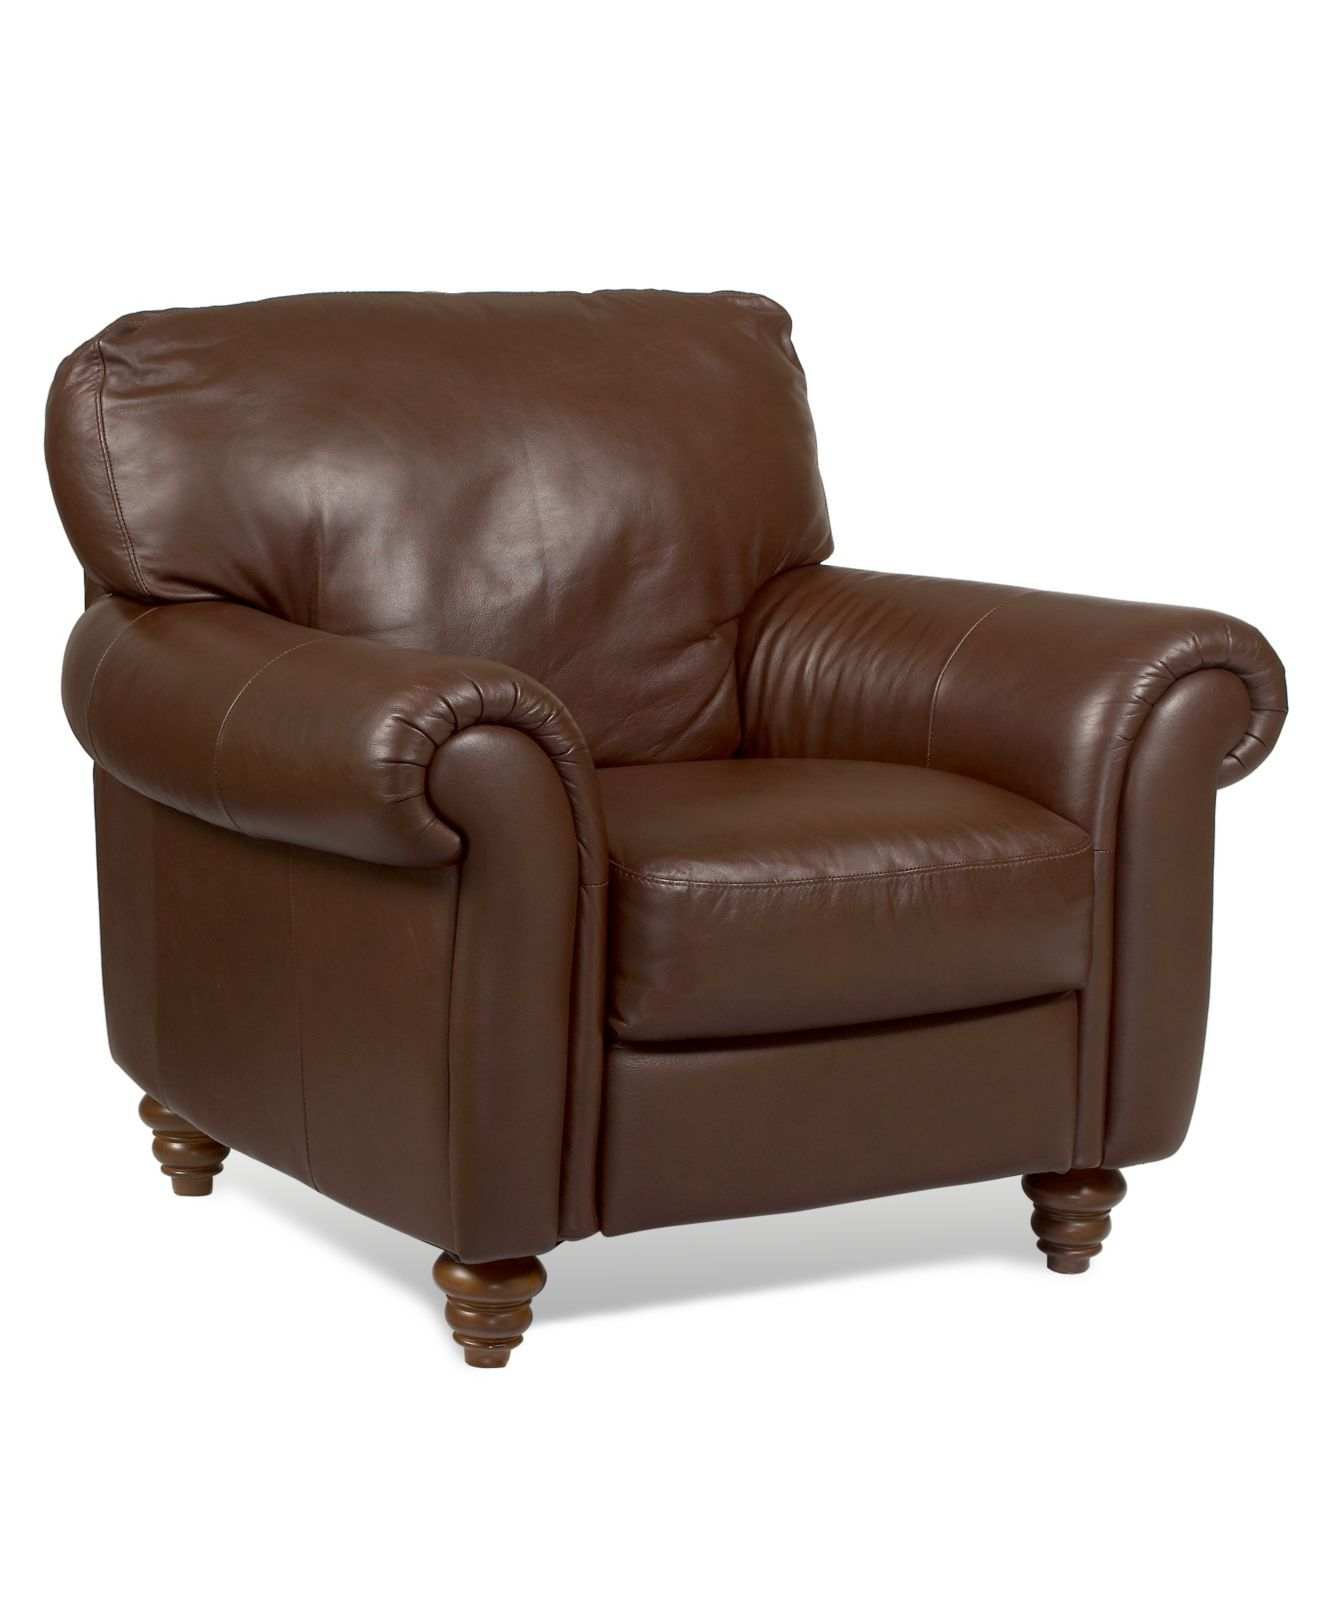 Umbria Leather Living Room Chair 41 W X 37 D X 36 H Chairs Recliners Furniture Leather Chair Living Room Living Room Chairs Living Room Decor Furniture